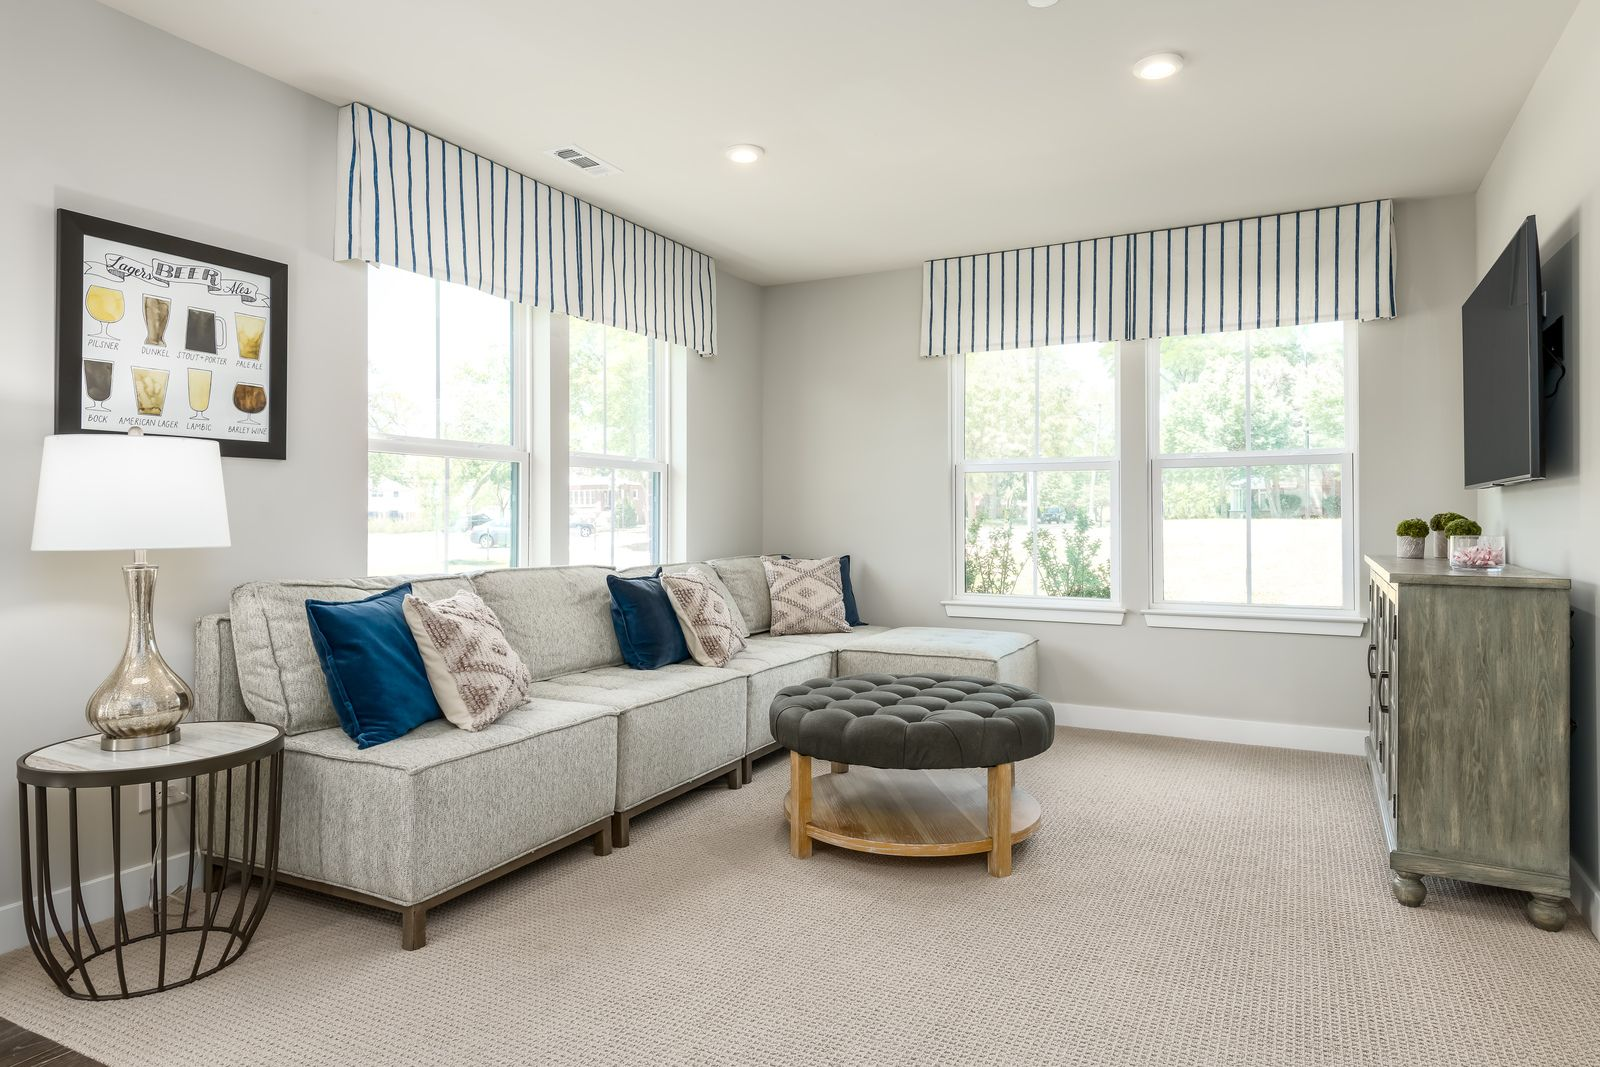 Living Area featured in the Mozart Rear 2-Car Garage By Ryan Homes in Chicago, IL